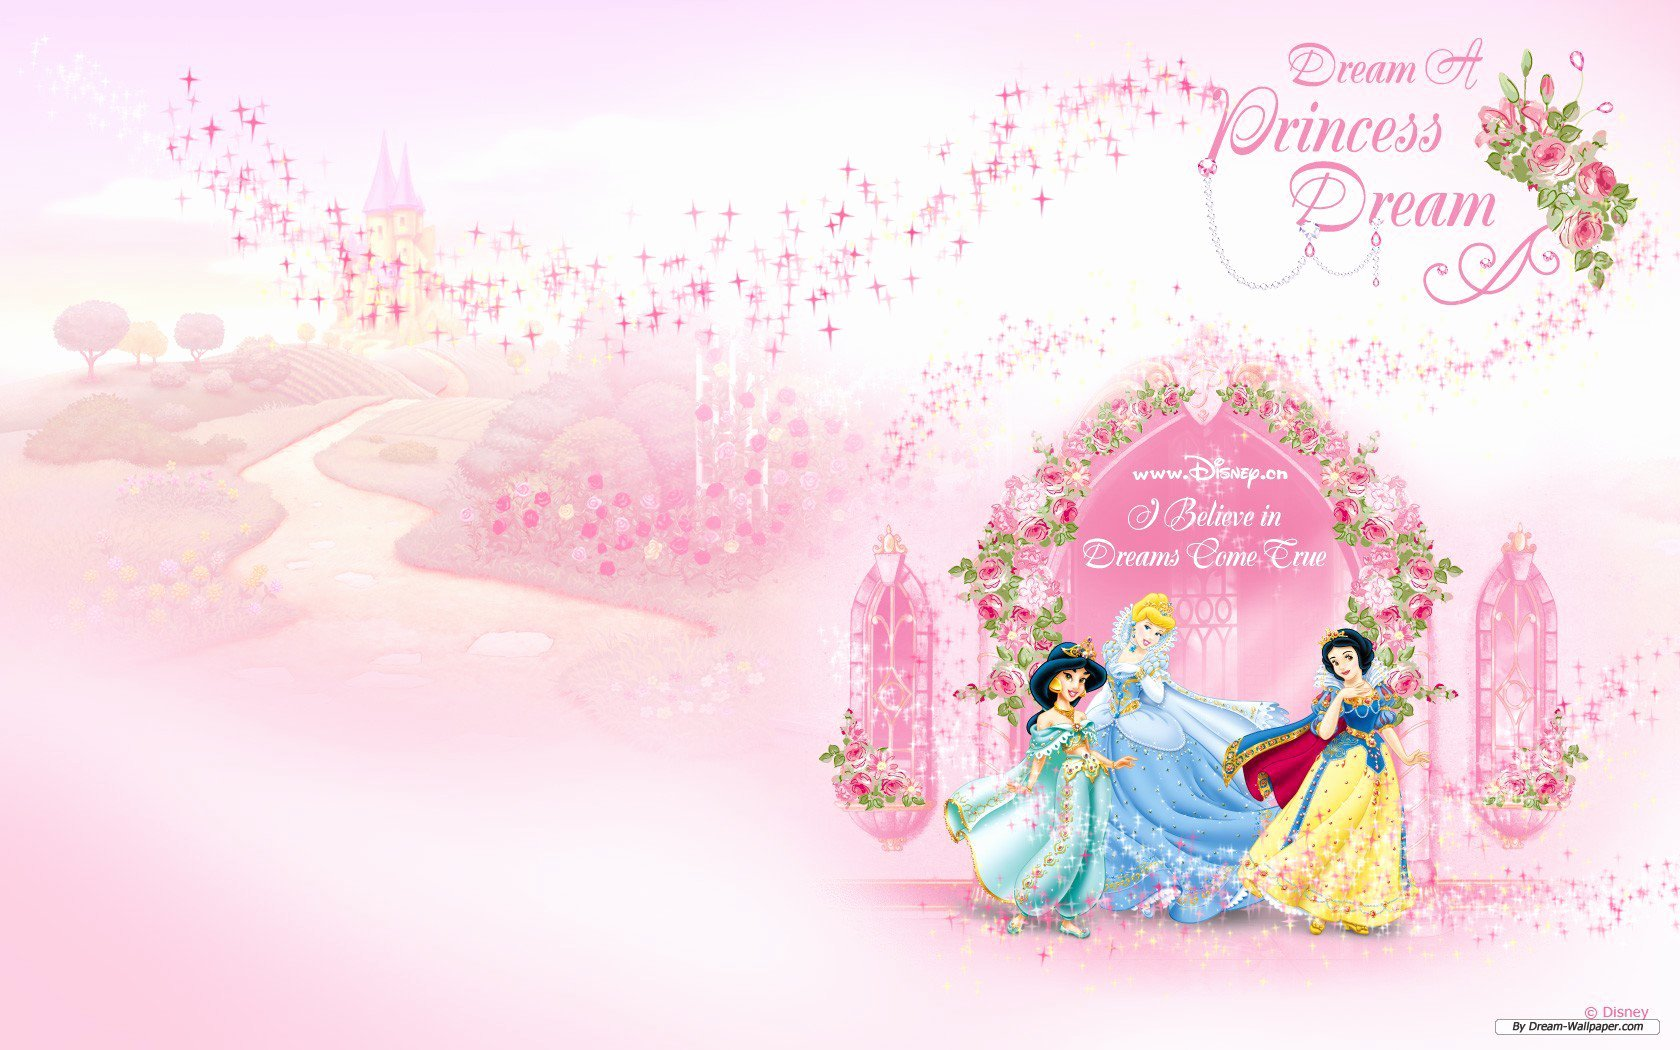 Disney Princess Invitation Templates Free Luxury Disney Princess Invitation Templates Free